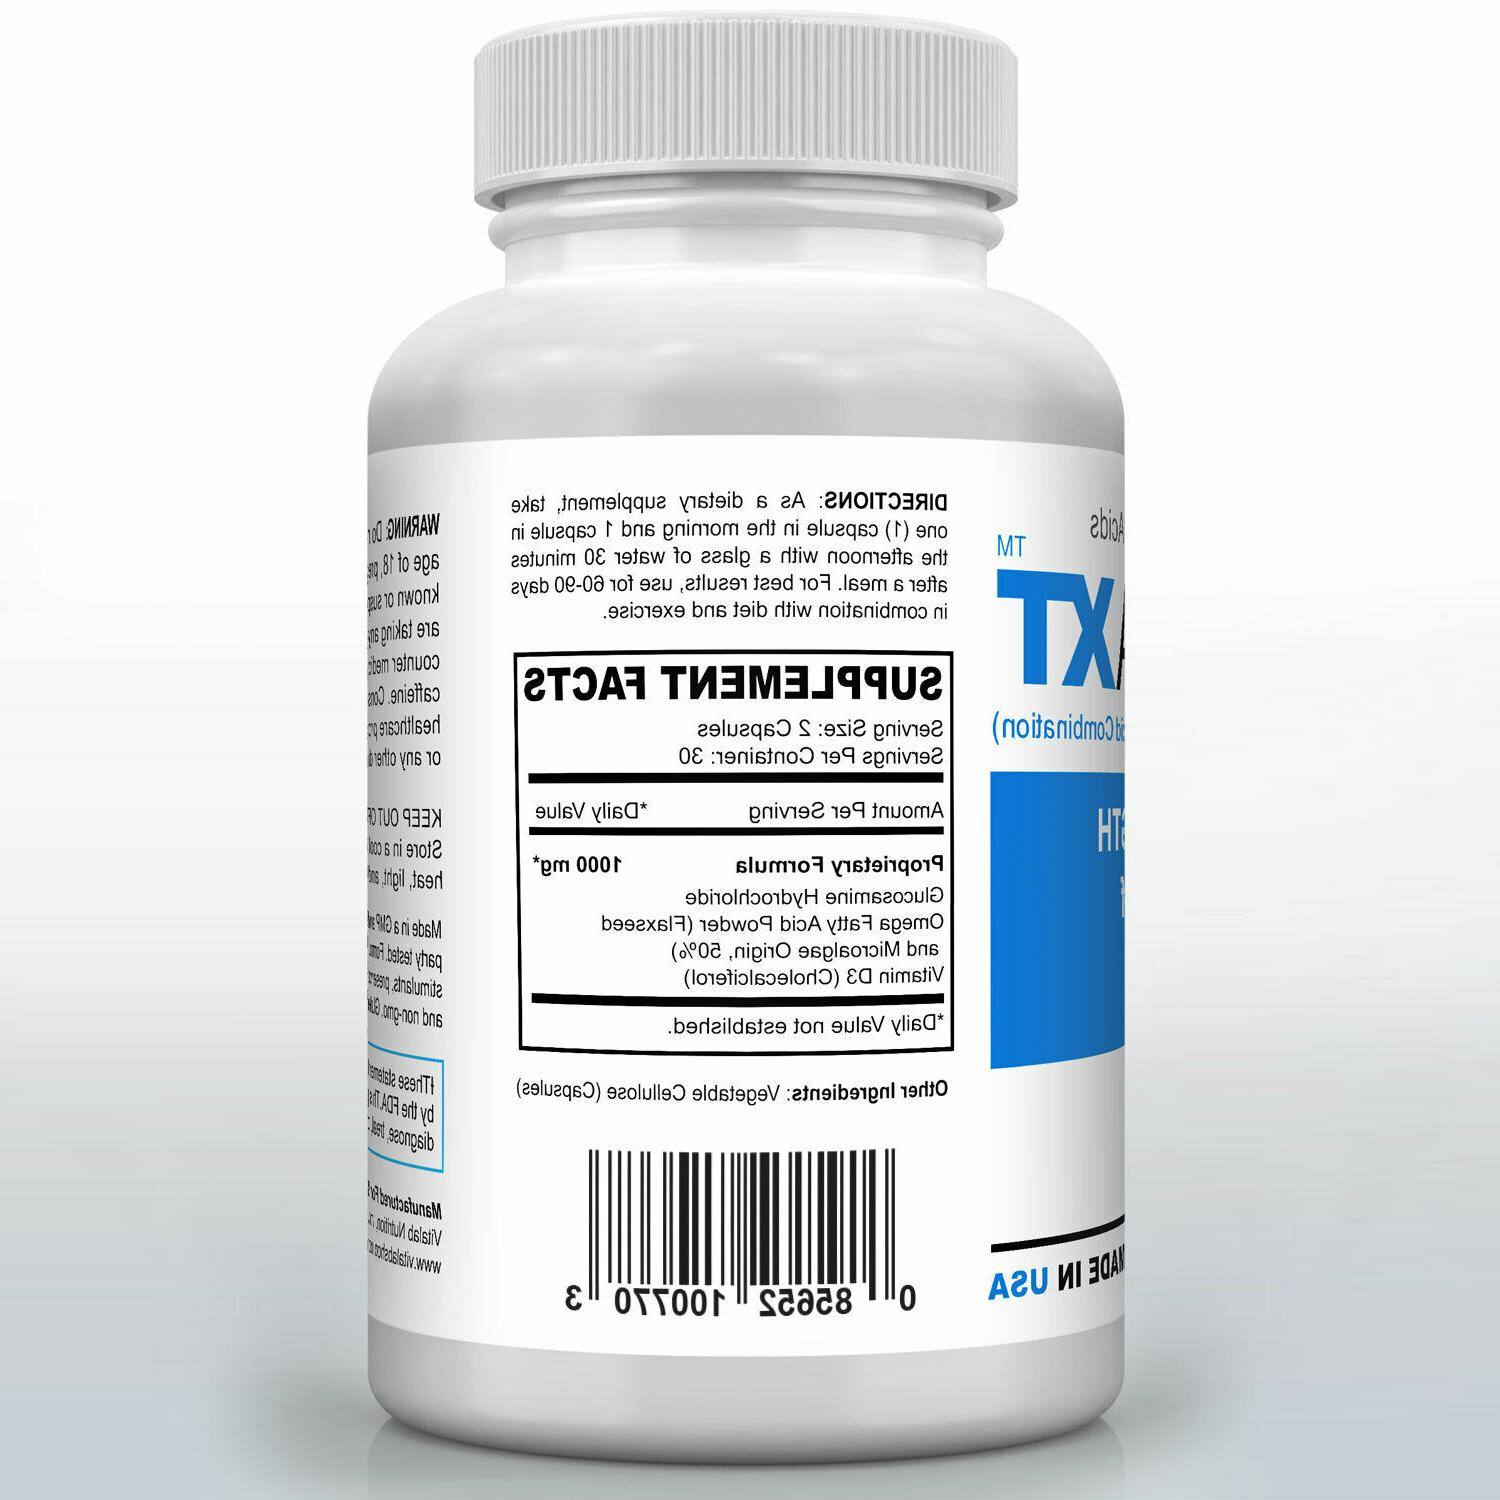 Omega XT New Strength Support Omega-3 Potent Joint 60ct